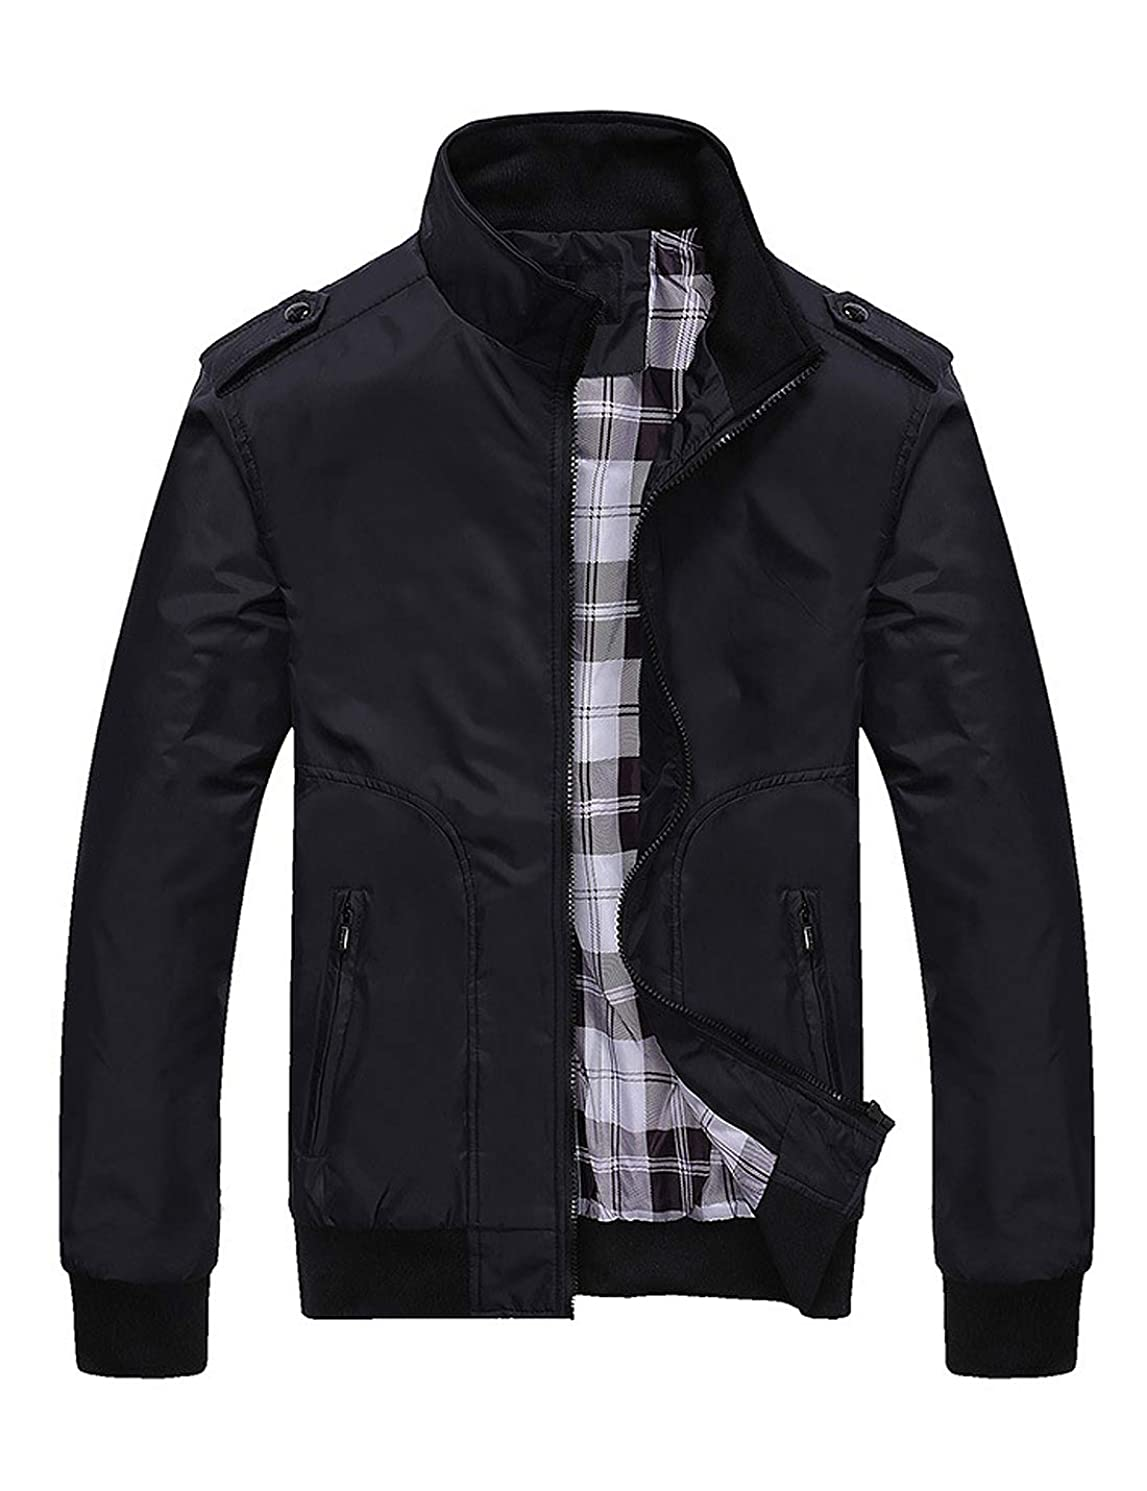 Locachy Men's Casual Stand Collar Lightweight Bomber Jacket with Shoulder Straps